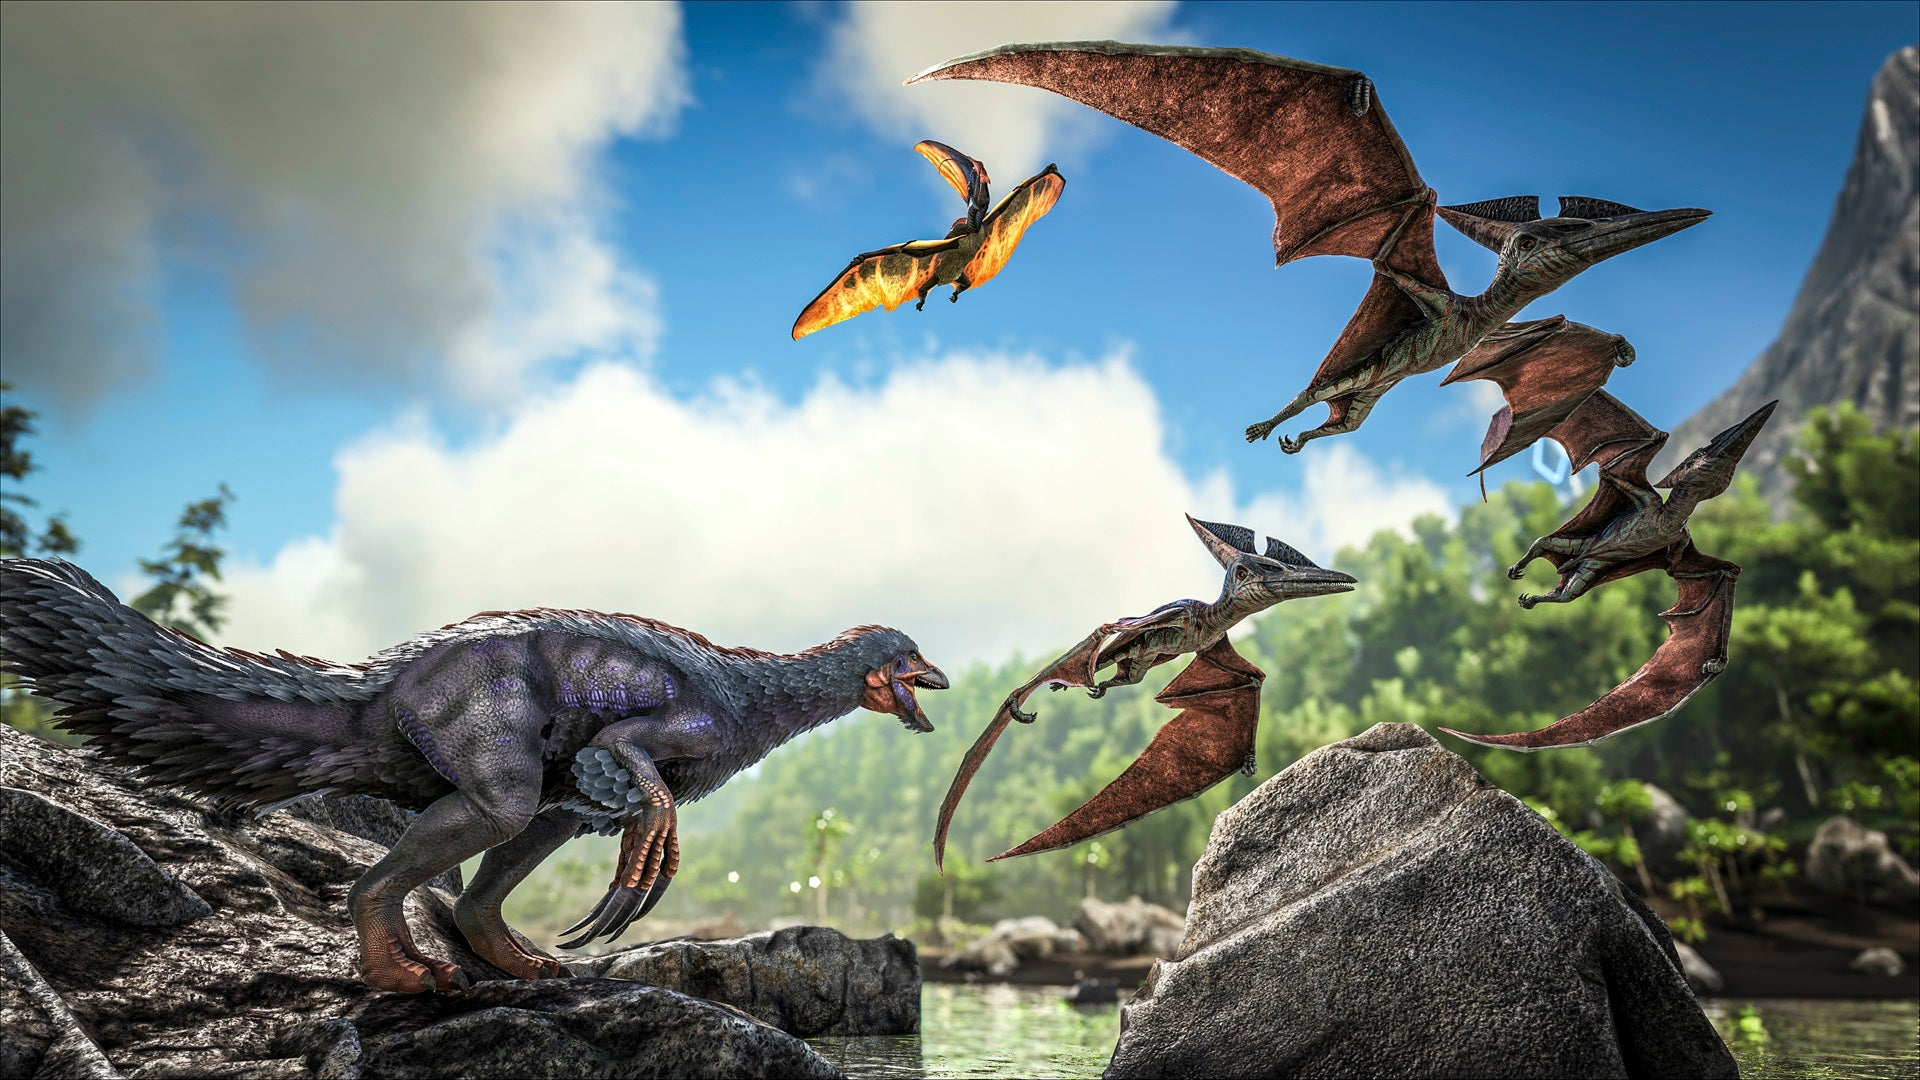 Ark Survival Evolved jumps to $60 on Steam